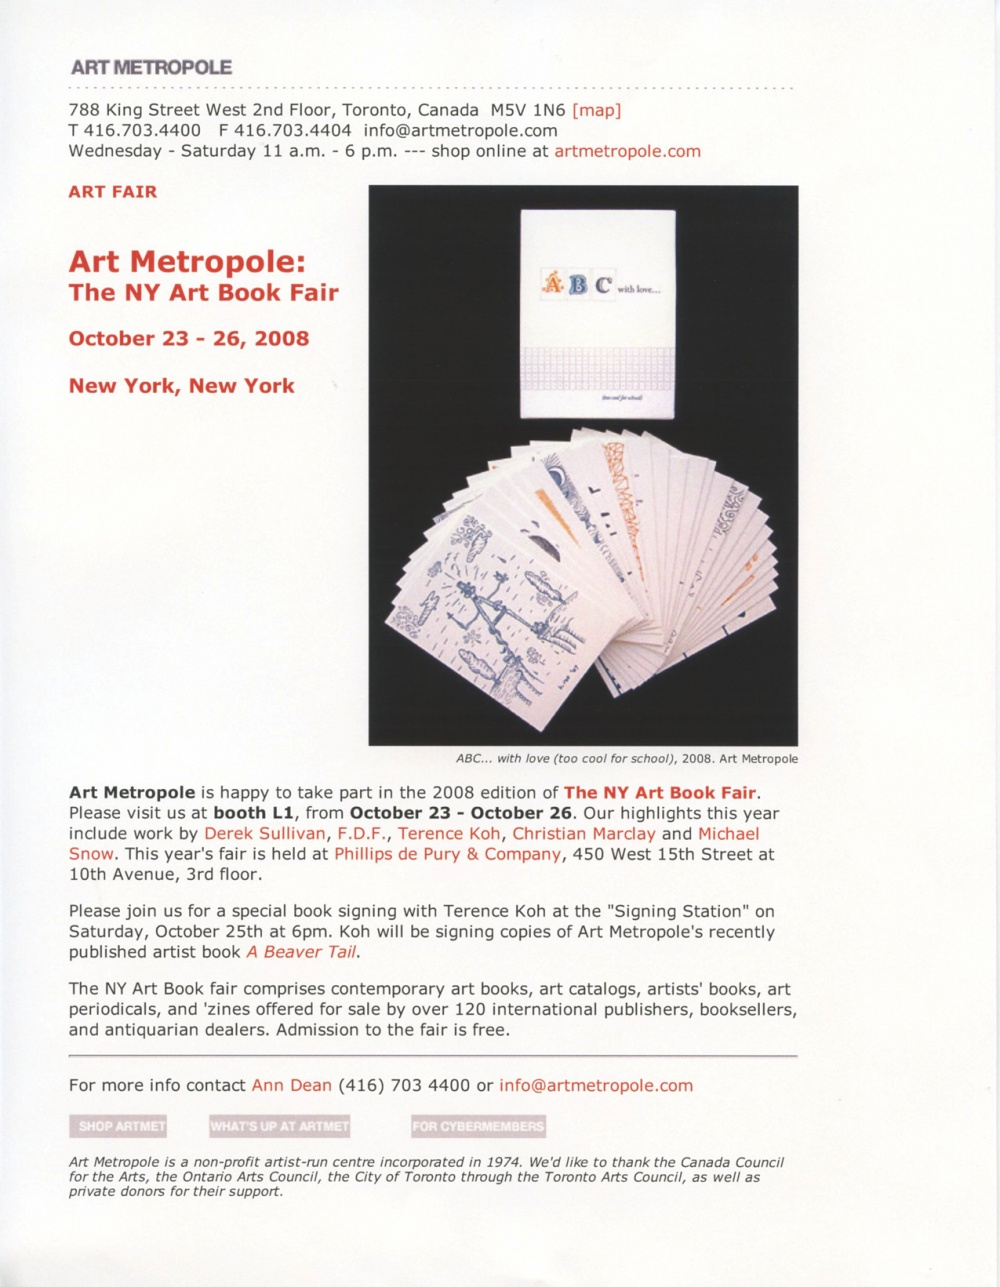 Art Metropole at the NY Art Book Fair.